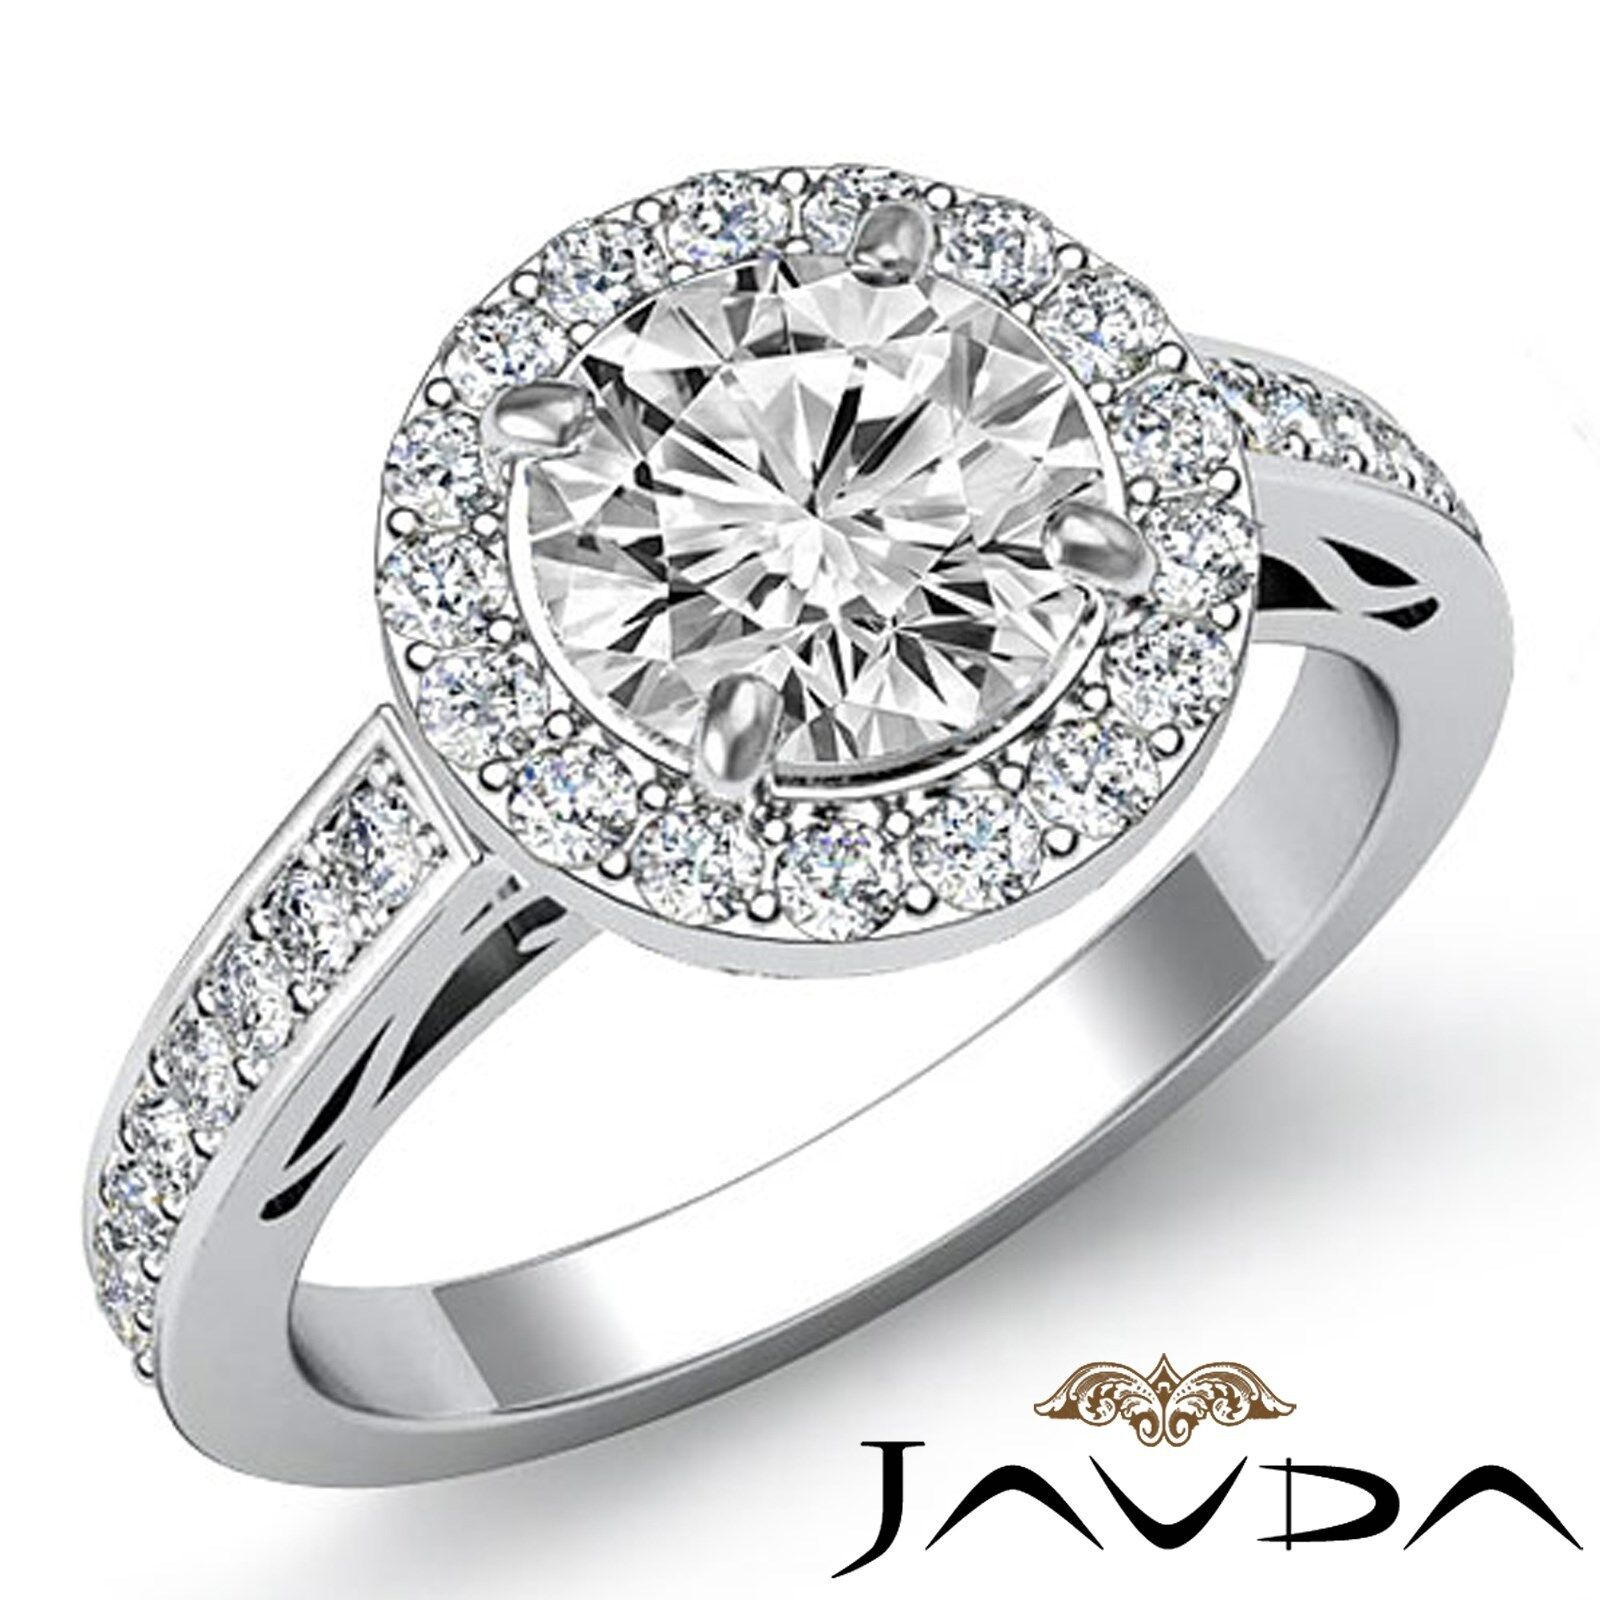 Halo Round Cut Diamond Engagement Filigree Pave Ring GIA Certified I VS2 2.3 Ct